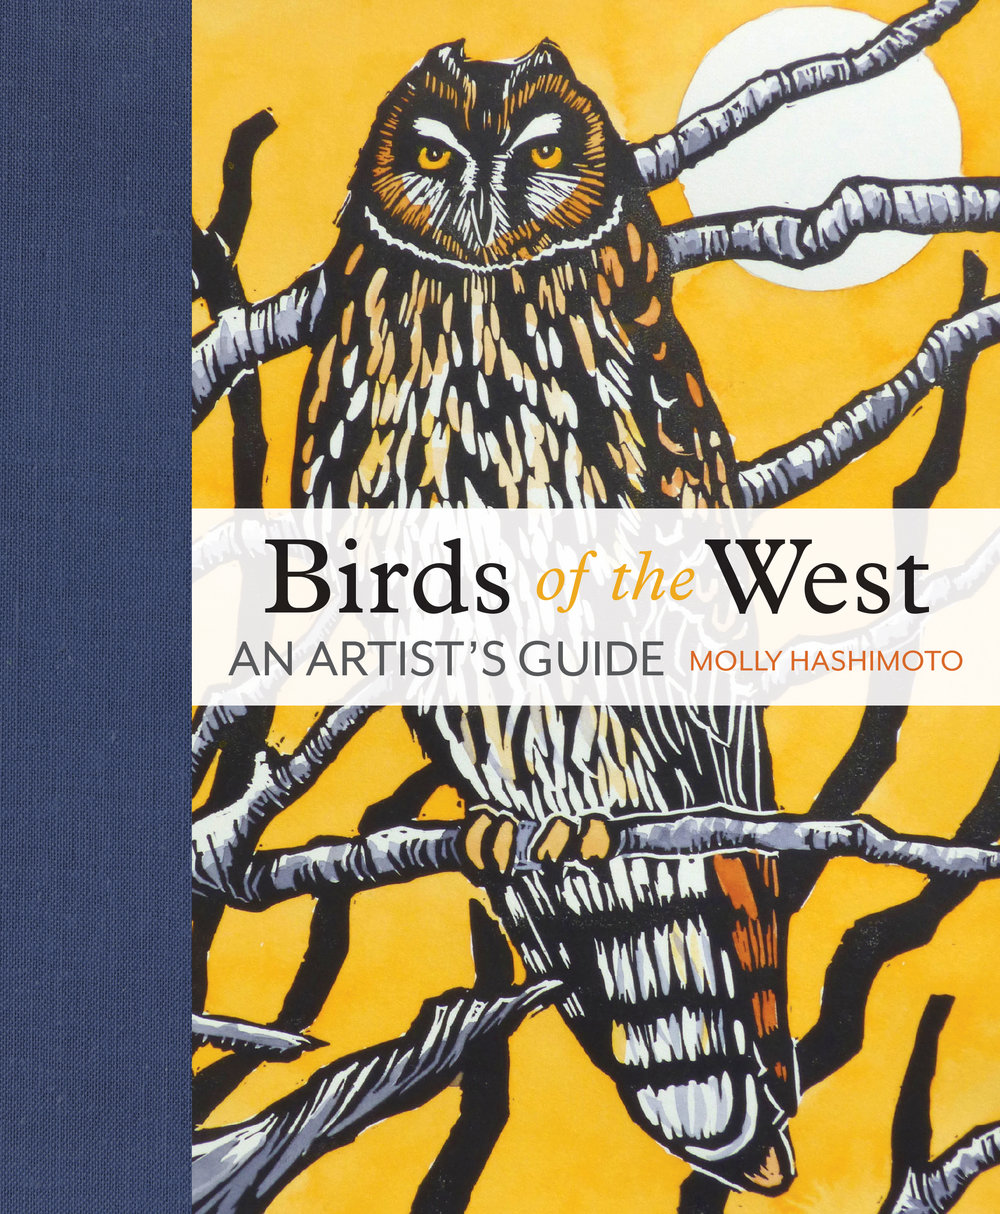 BirdsOfTheWest_Cover_Final_WebF.jpg